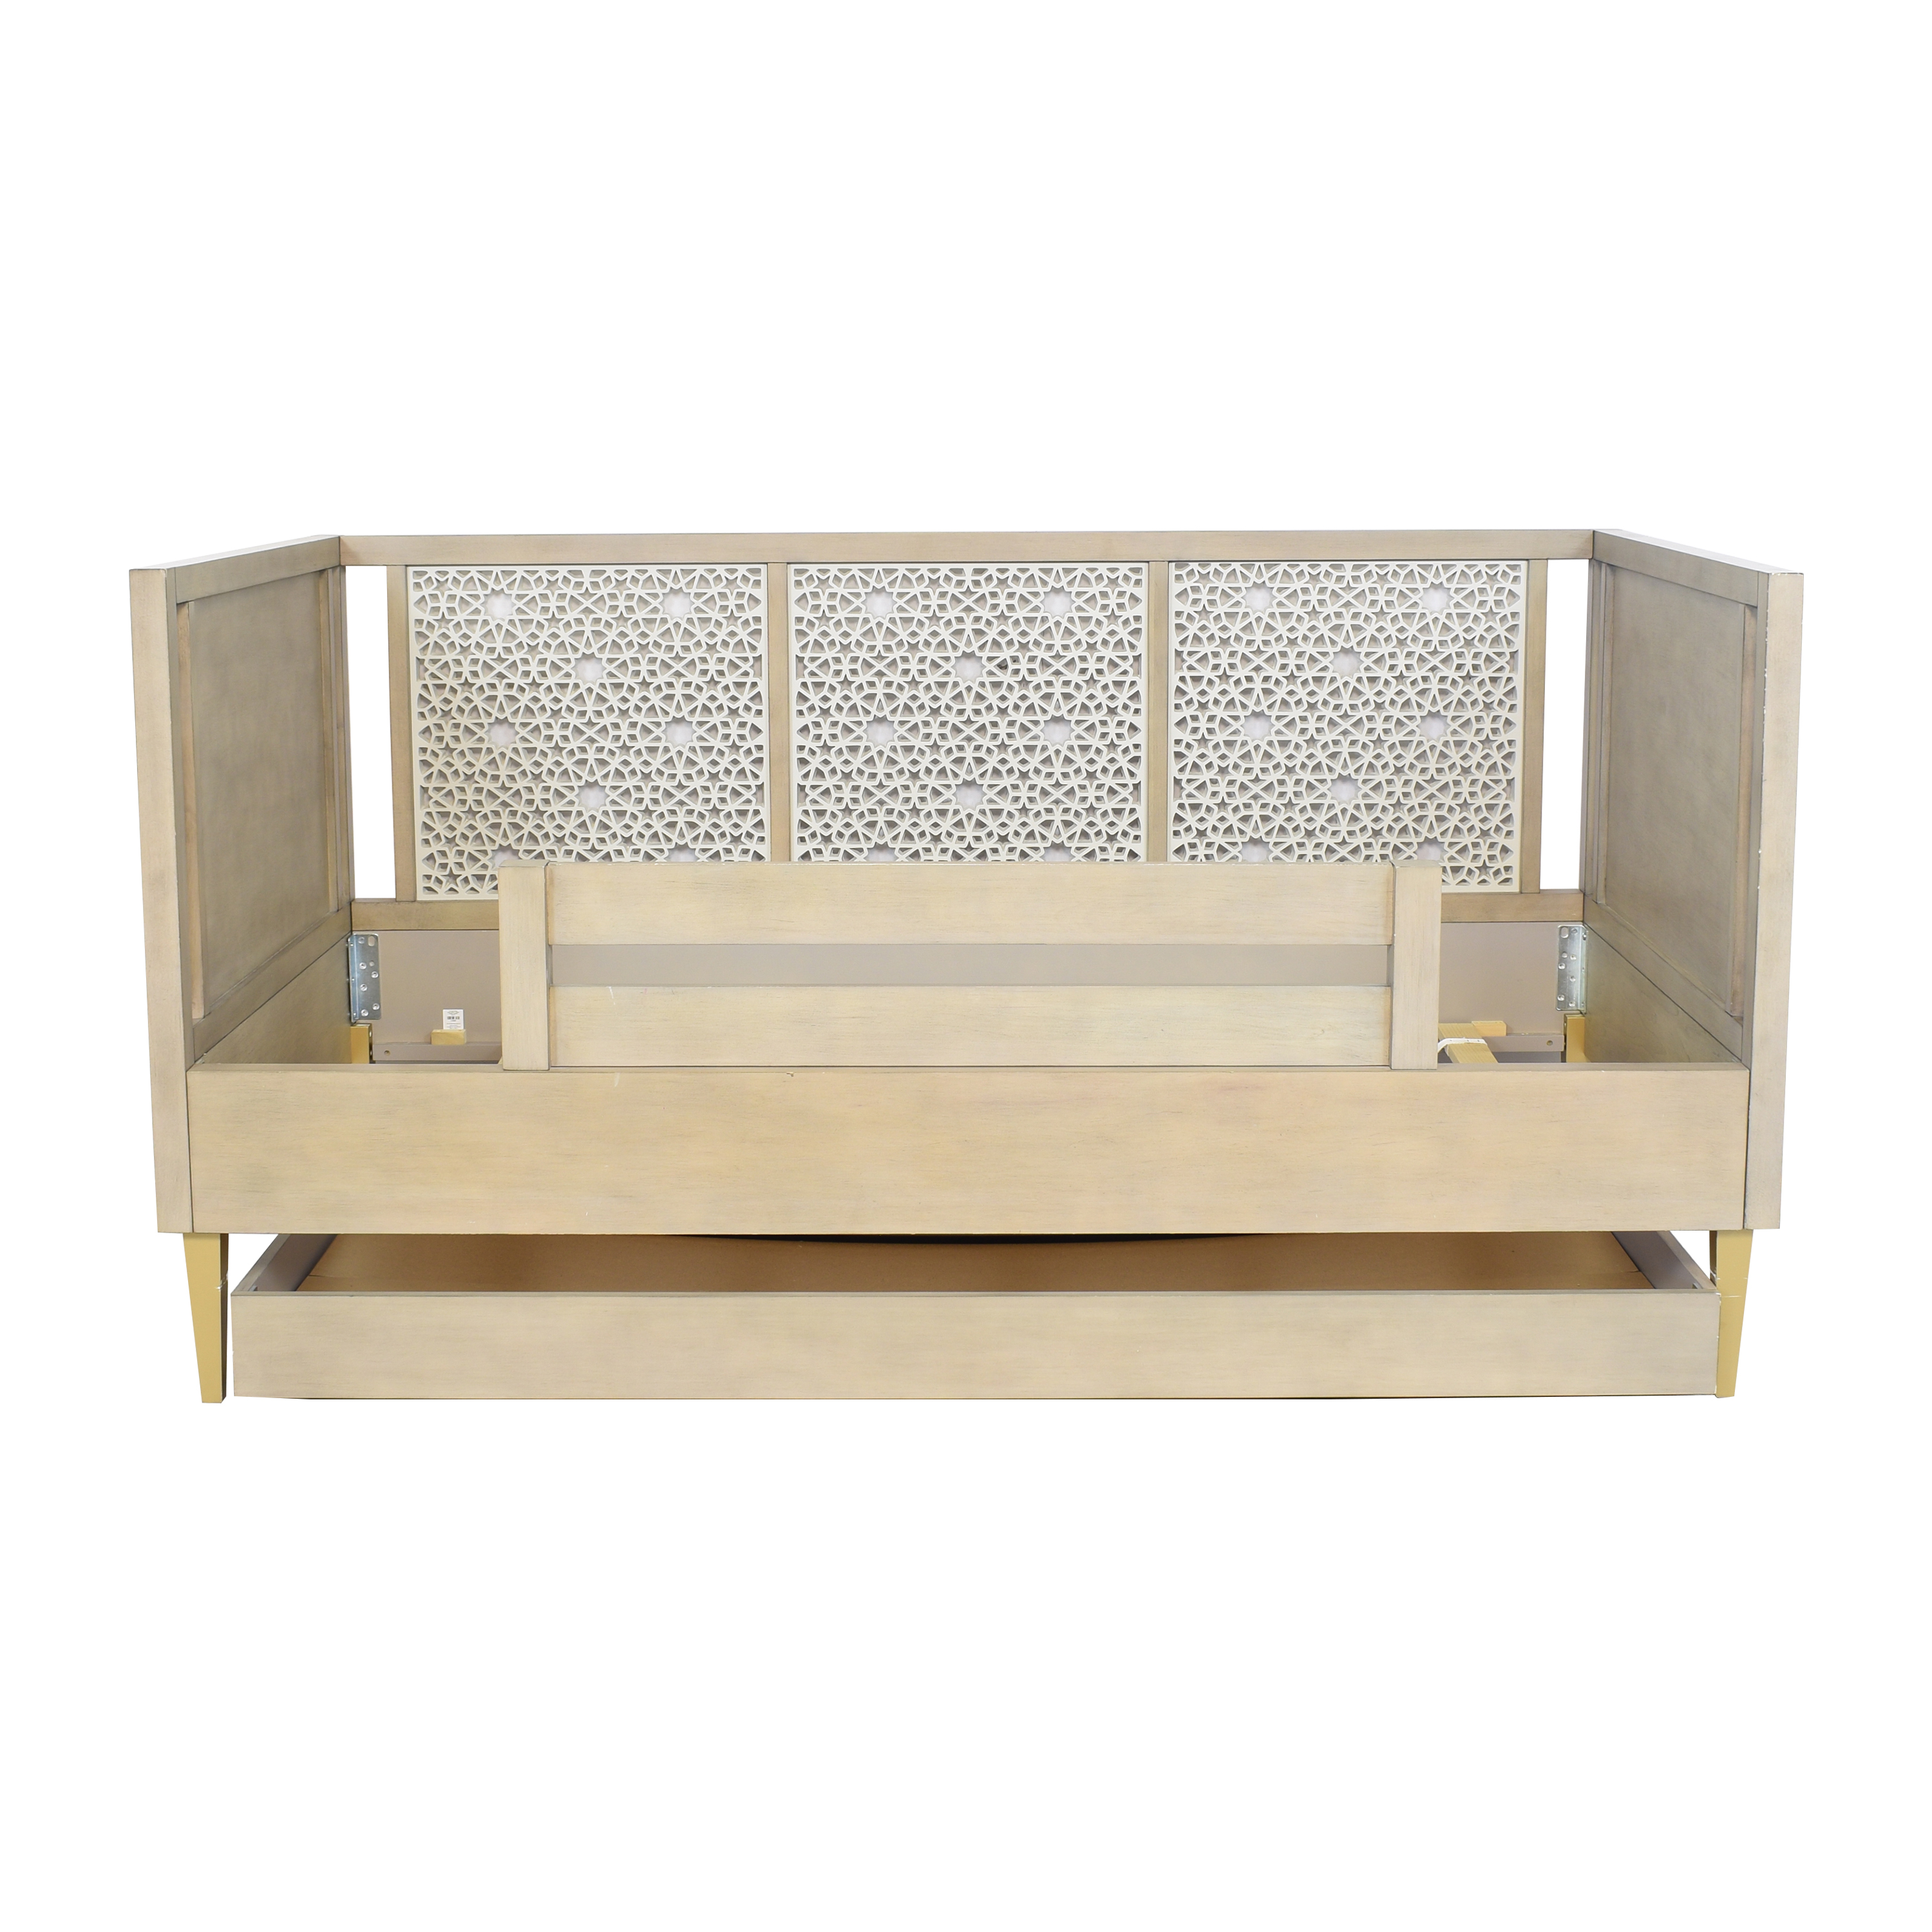 Land of Nod Land of Nod Genevieve Gorder Latticework Grey Daybed and Trundle for sale